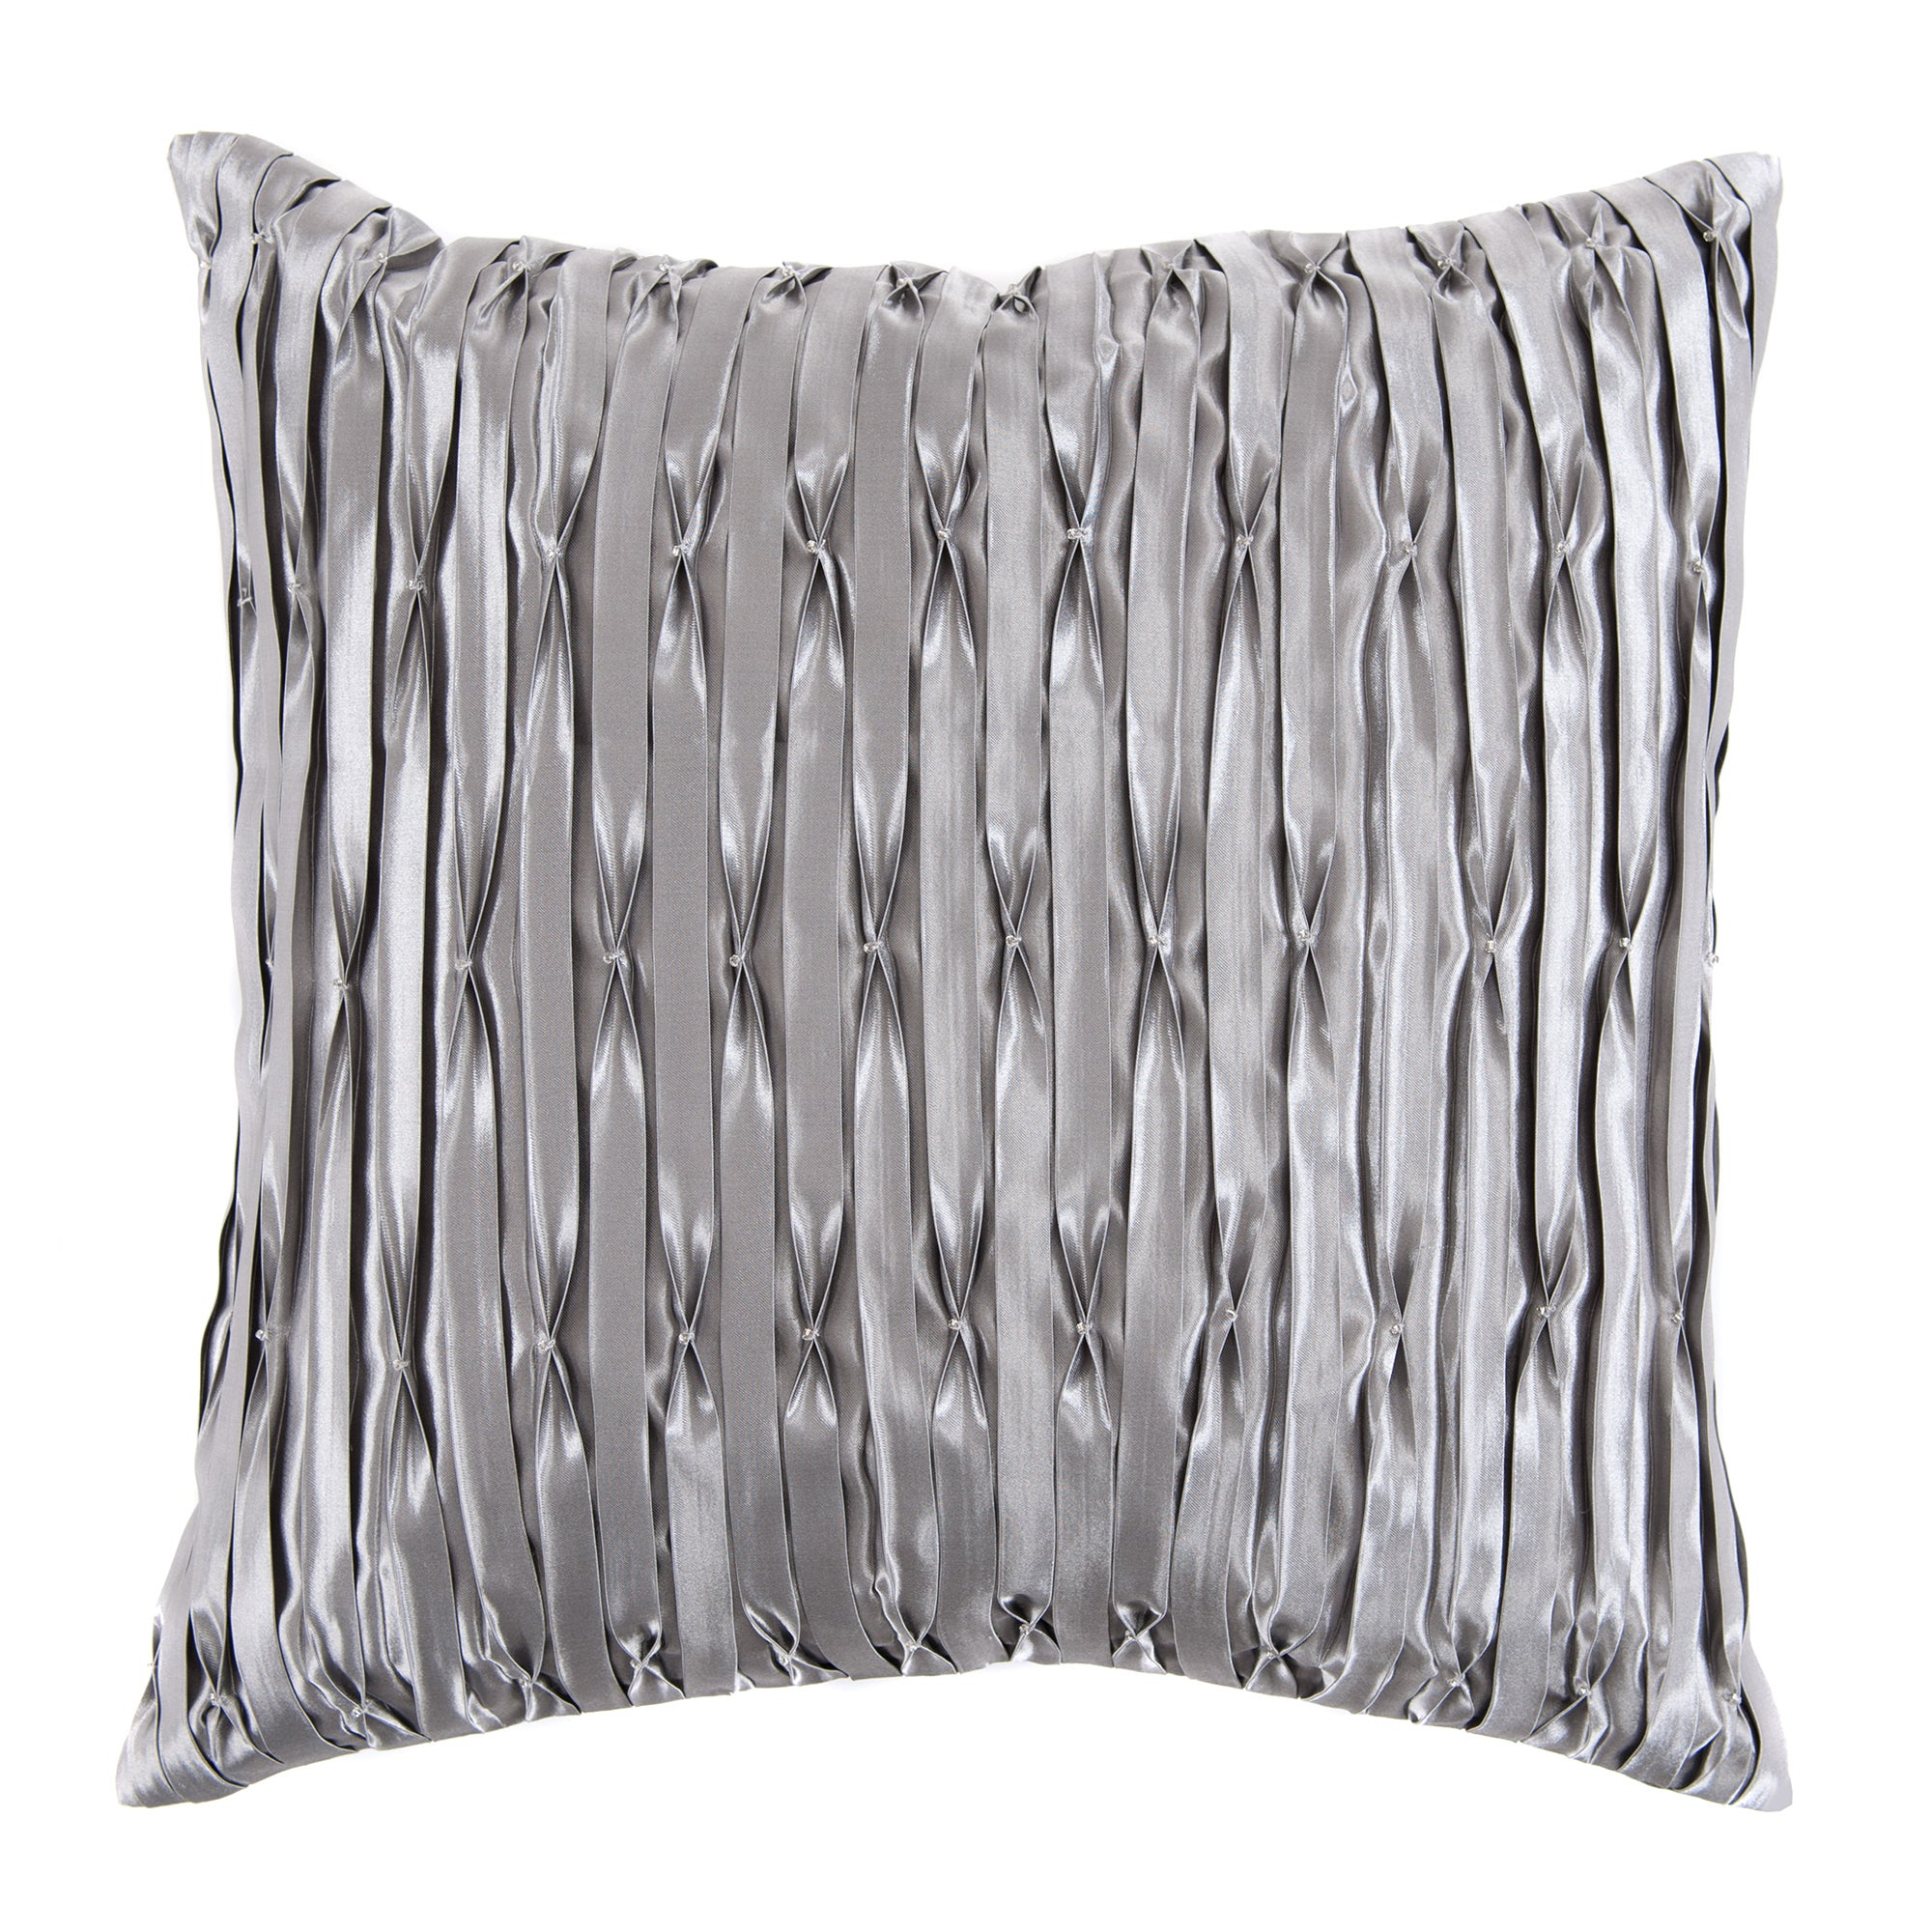 Gunmetal Madeleine Cushion